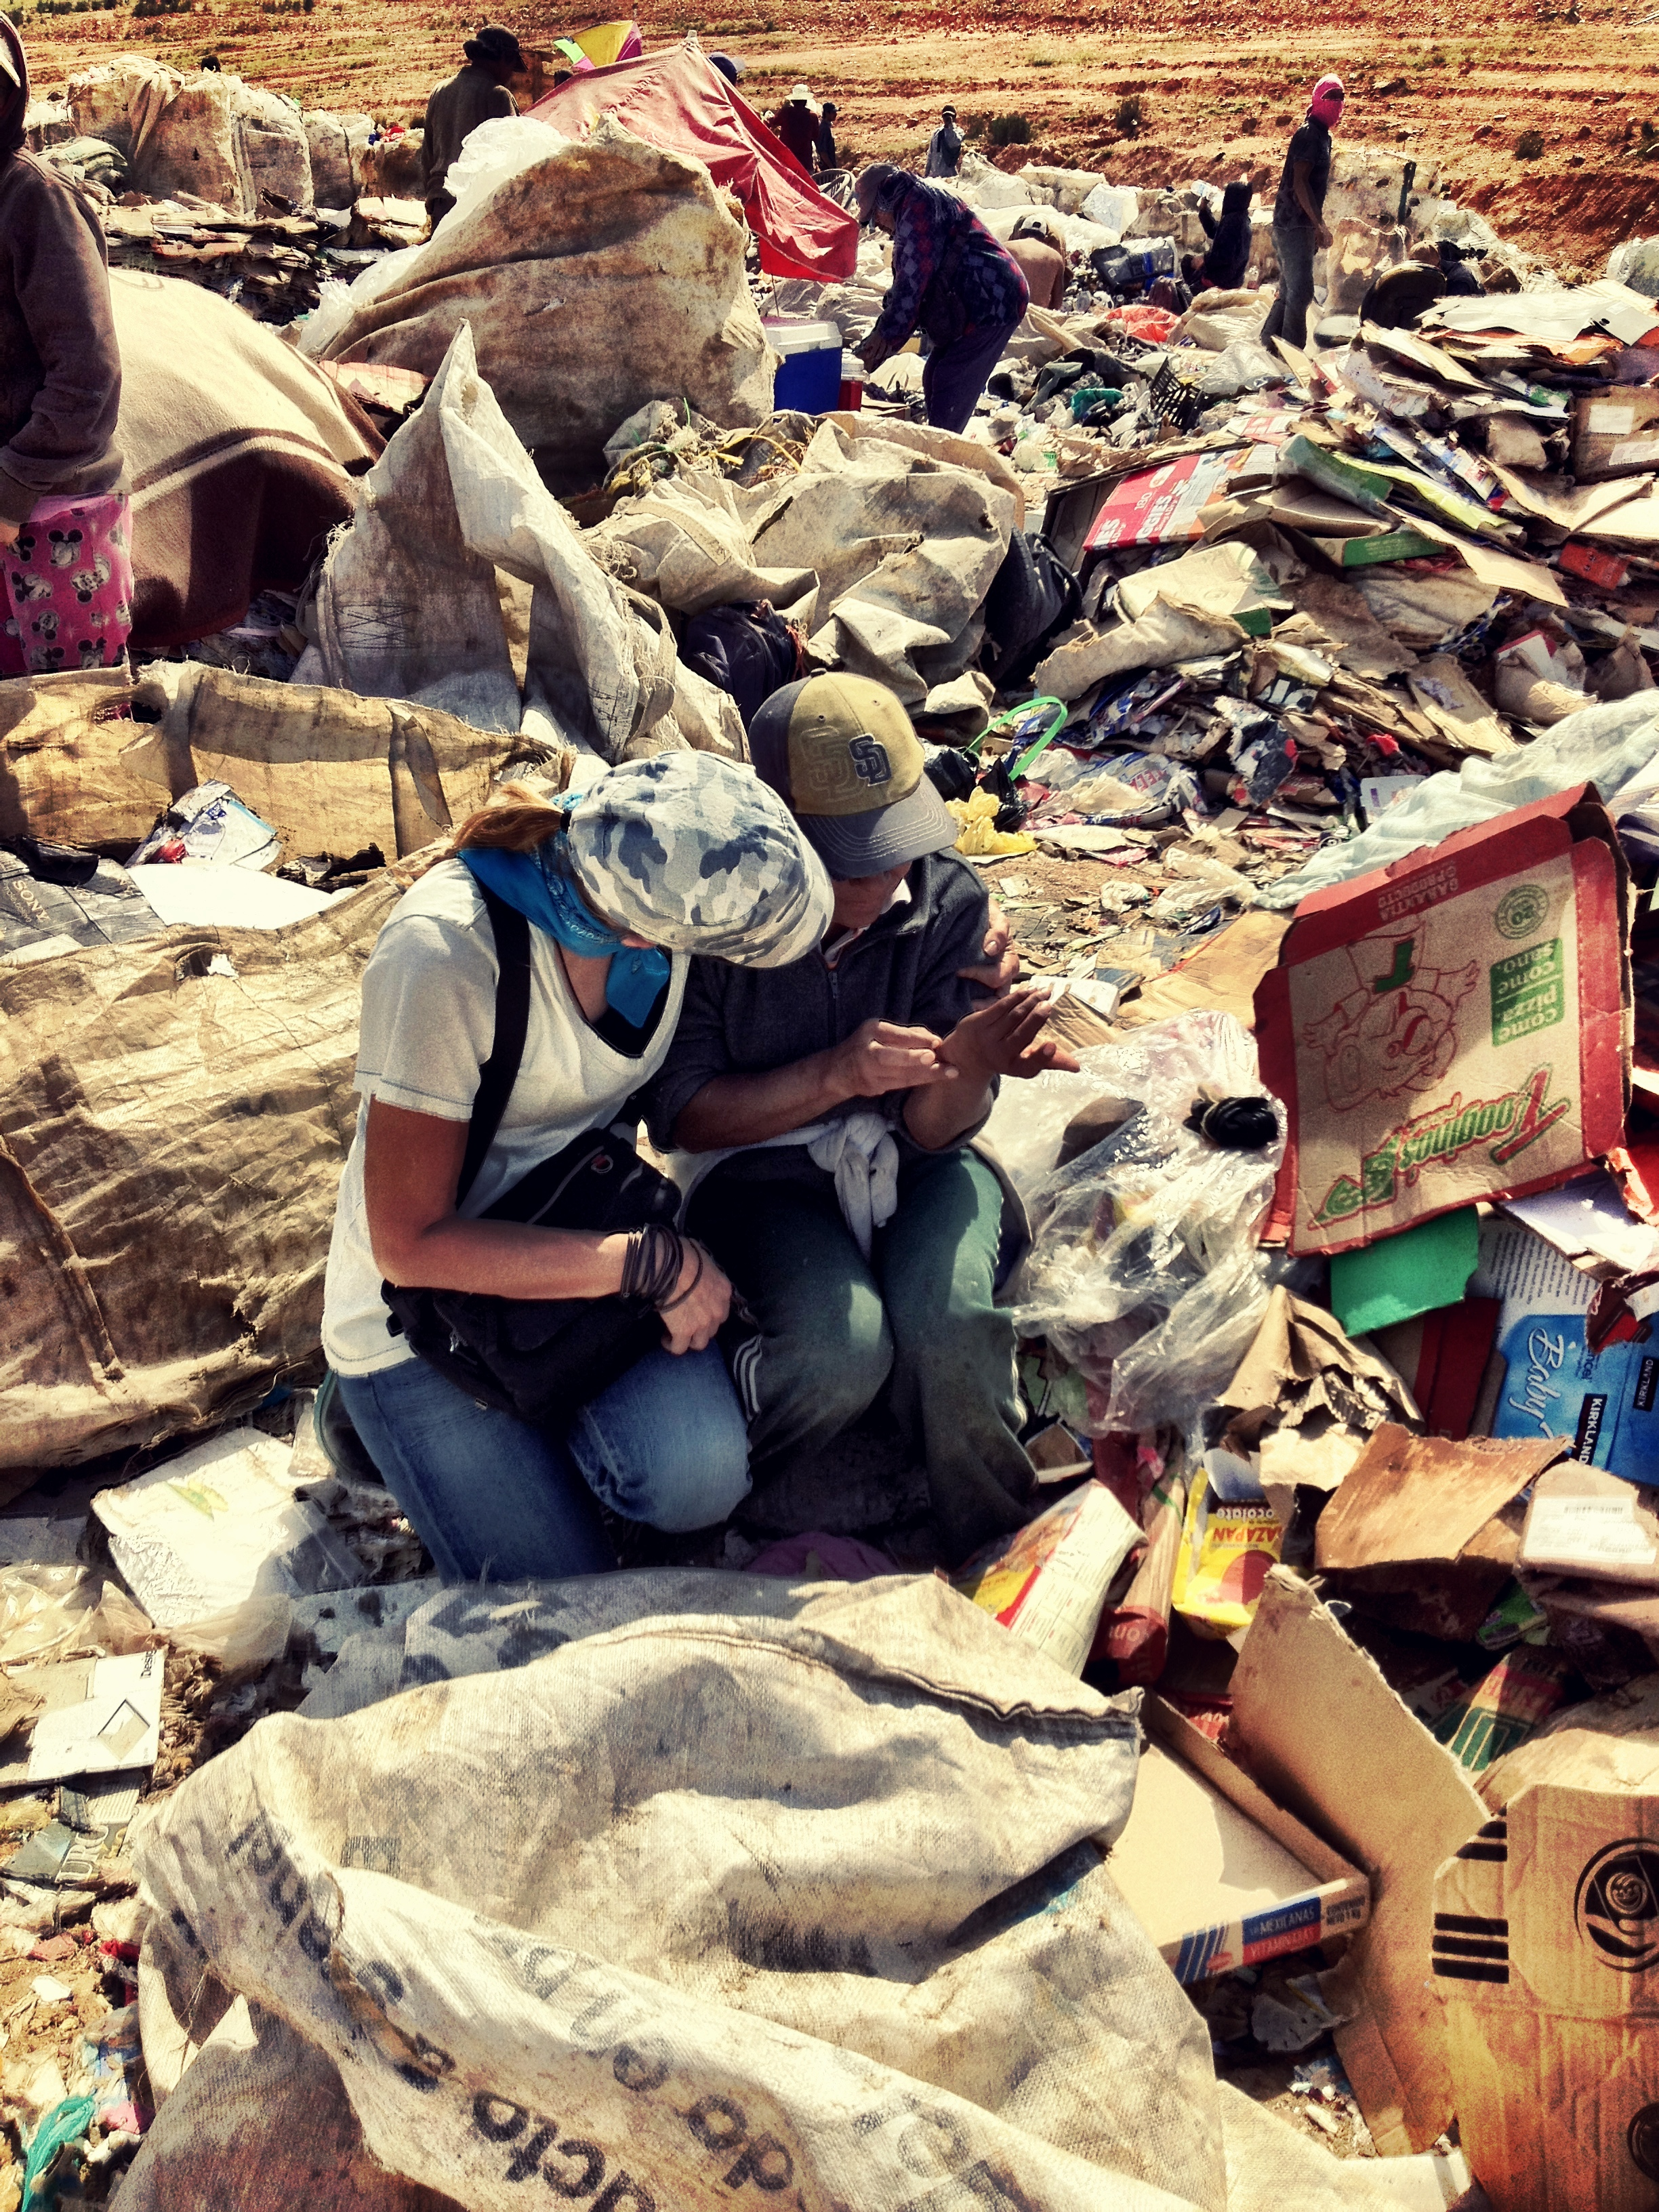 Garbage Dumps in Mexico at The Garbage Dump